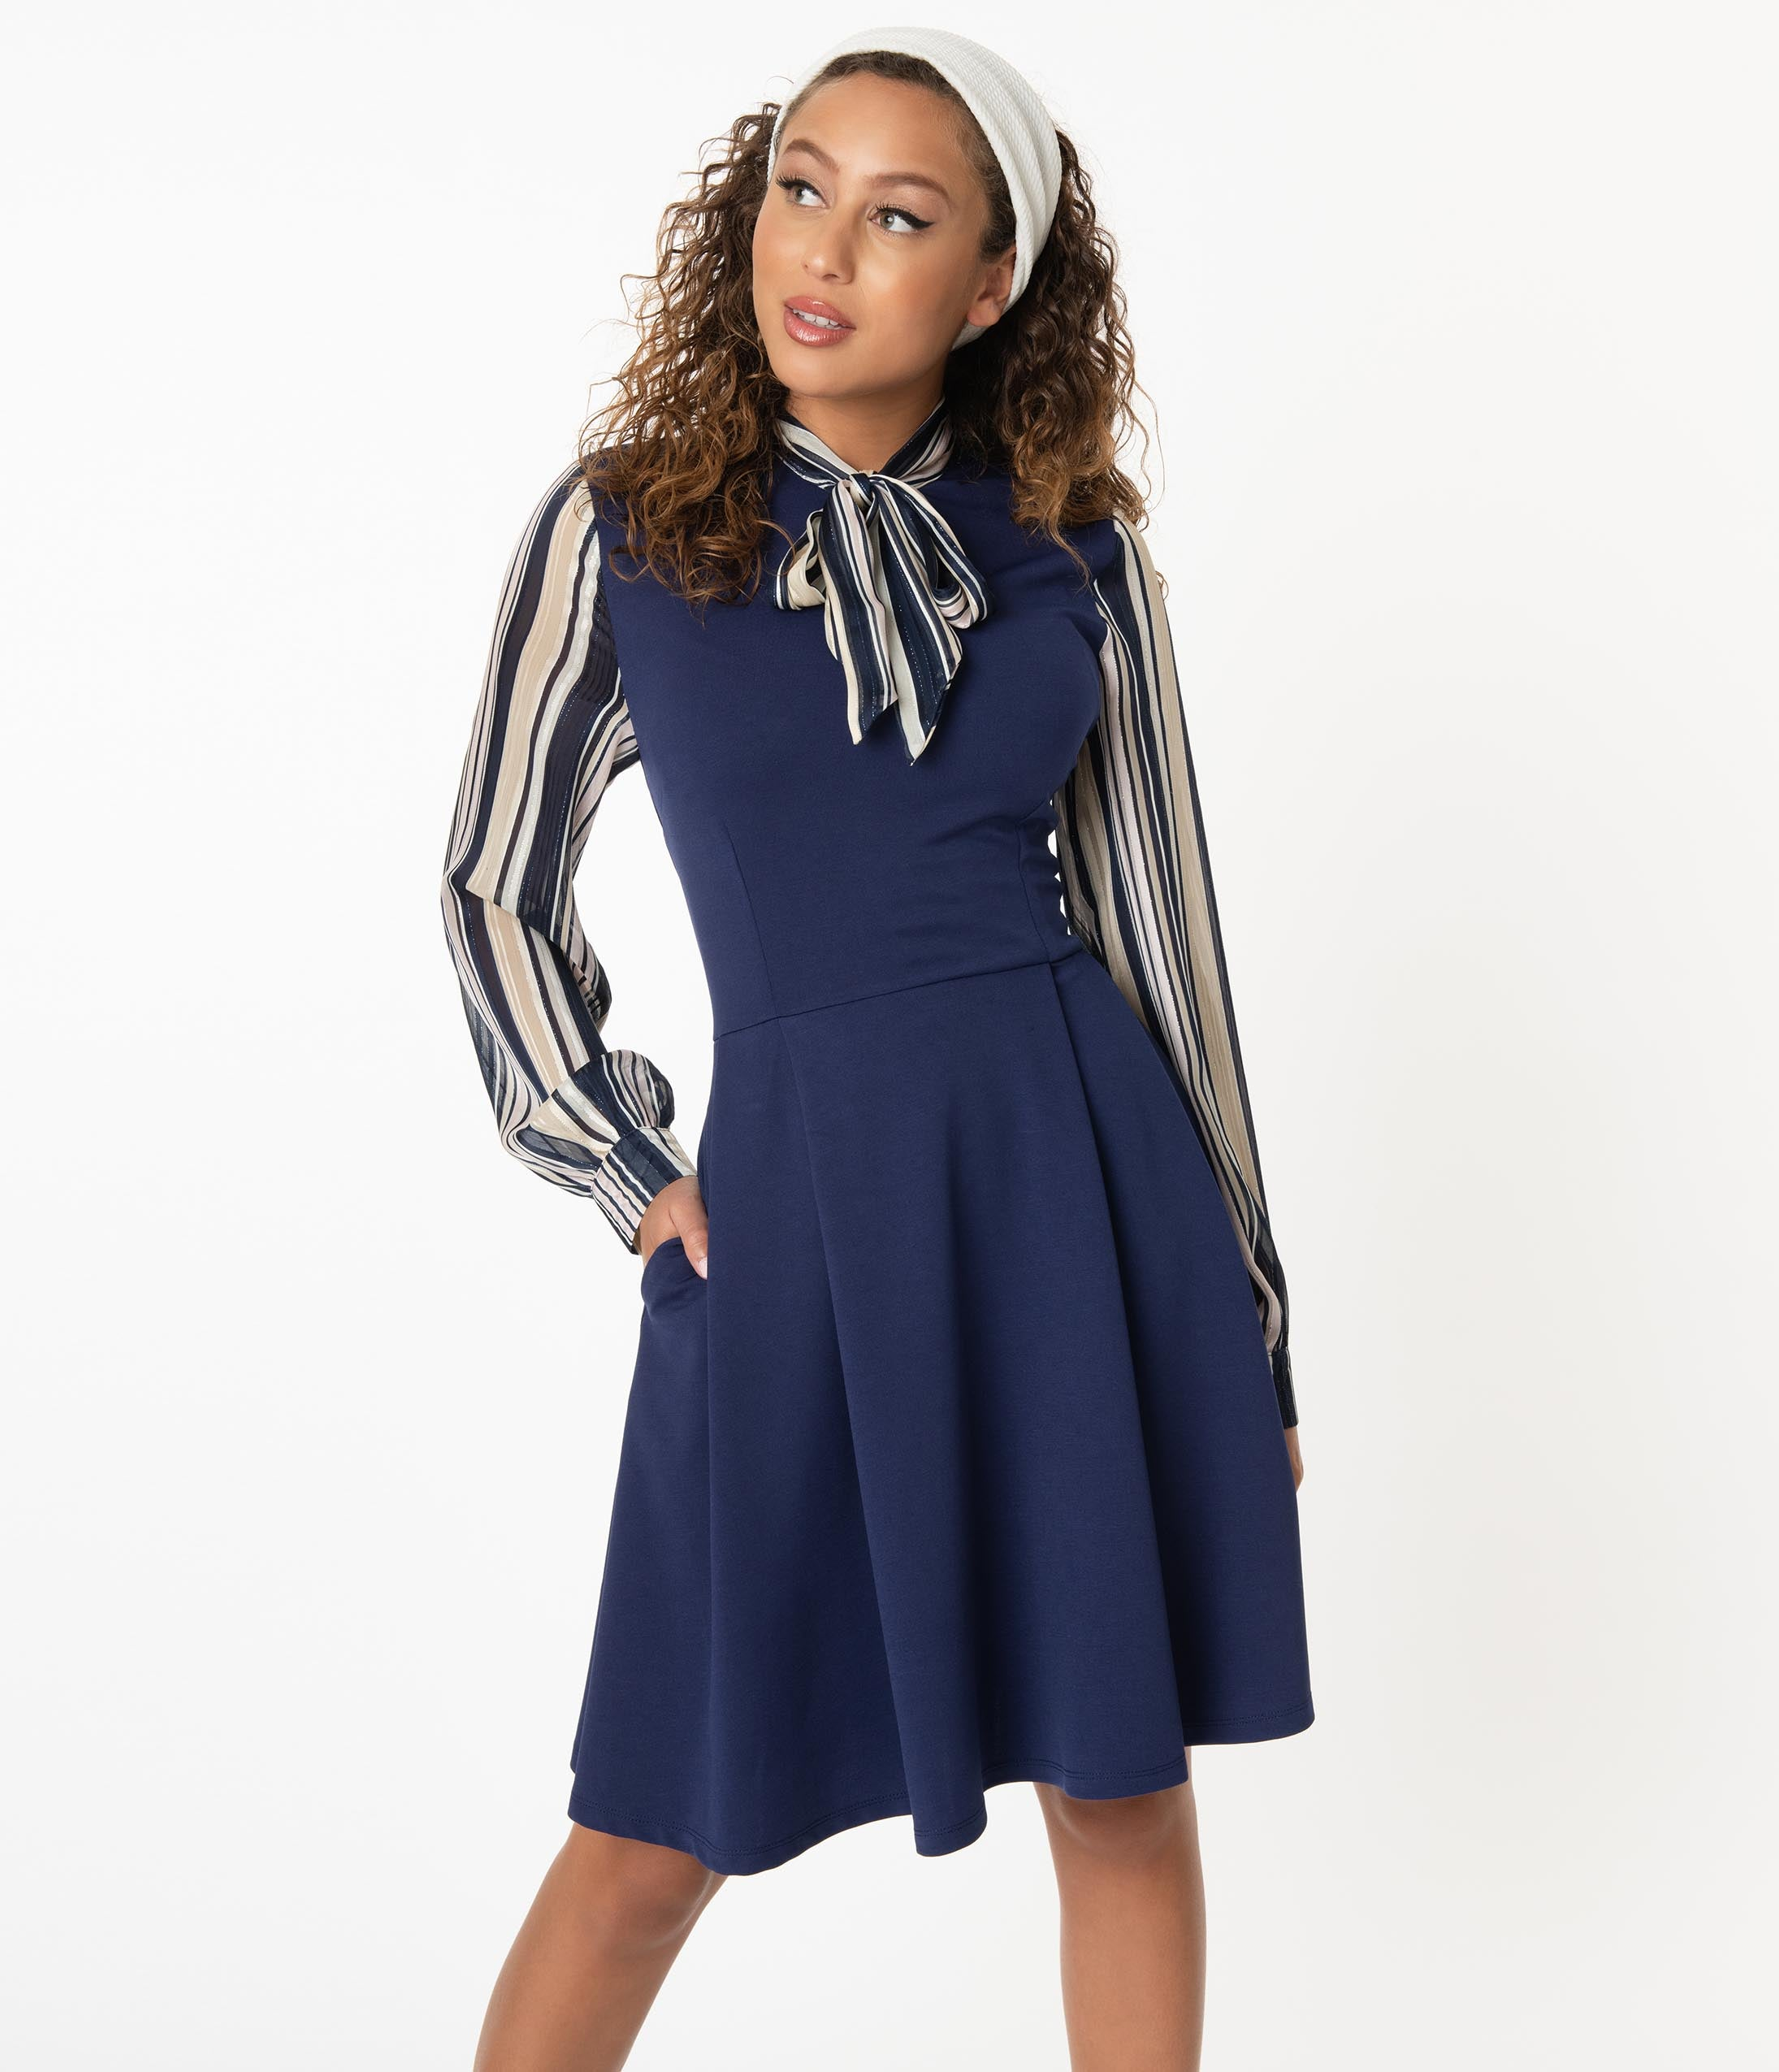 Vintage Style Dresses | Vintage Inspired Dresses Smak Parlour Navy  Shimmer Stripe She.e.o. Fit  Flare Dress $78.00 AT vintagedancer.com